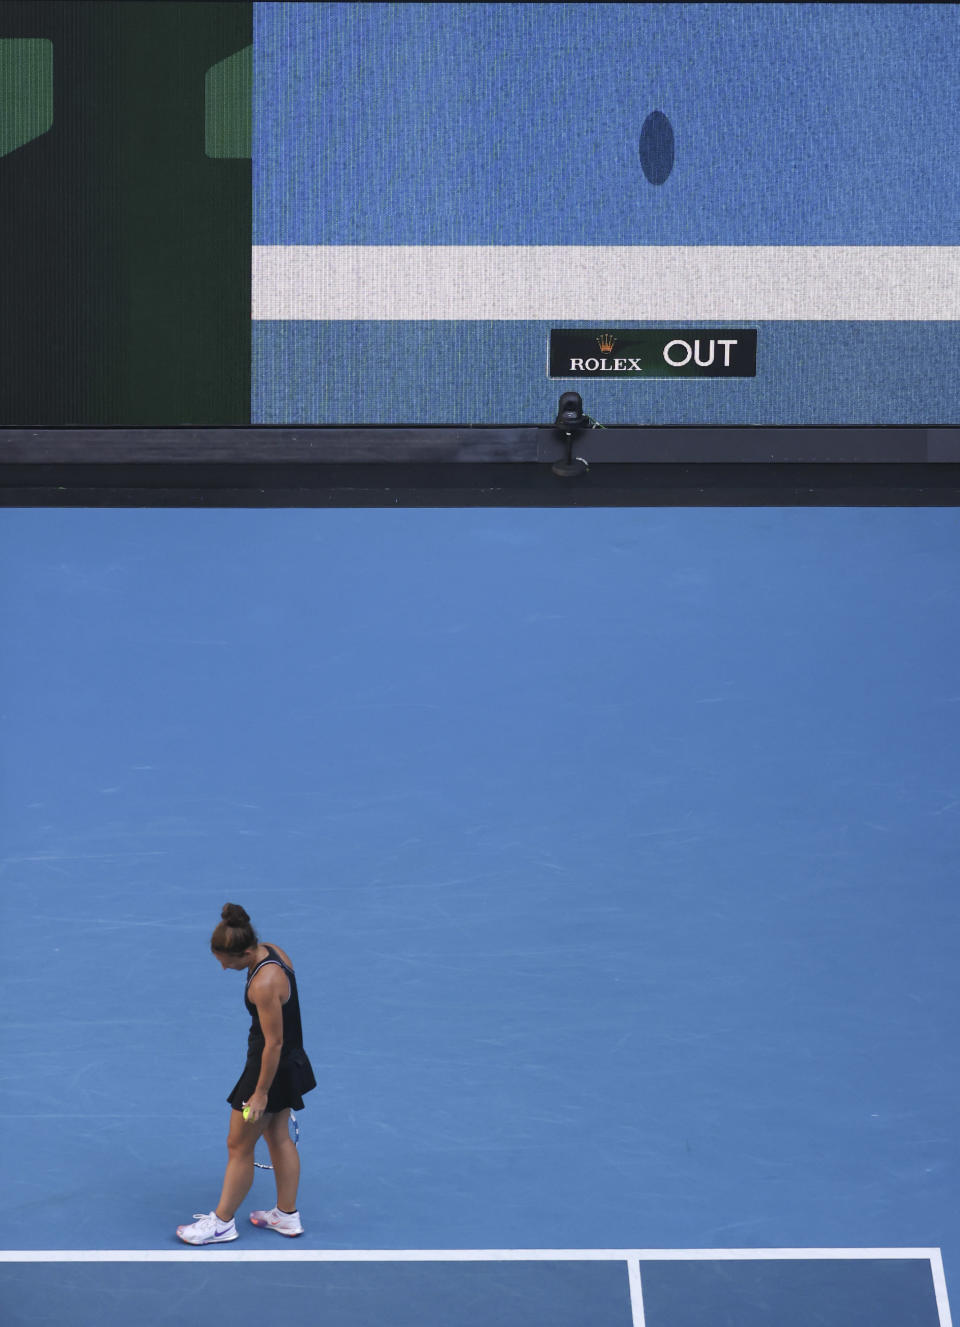 Italy's Sara Errani waits as a video screen shows the line decision during her second round match agains Venus Williams of the US at the Australian Open tennis championship in Melbourne, Australia, Wednesday, Feb. 10, 2021. Eliminating all line judges and removing the human element from officiating at the Australian Open might have been a necessary step to reduce the number of people on court amid a pandemic. It also might be good for the integrity of the game, because getting every call right matters so much to players and fans. (AP Photo/Hamish Blair)